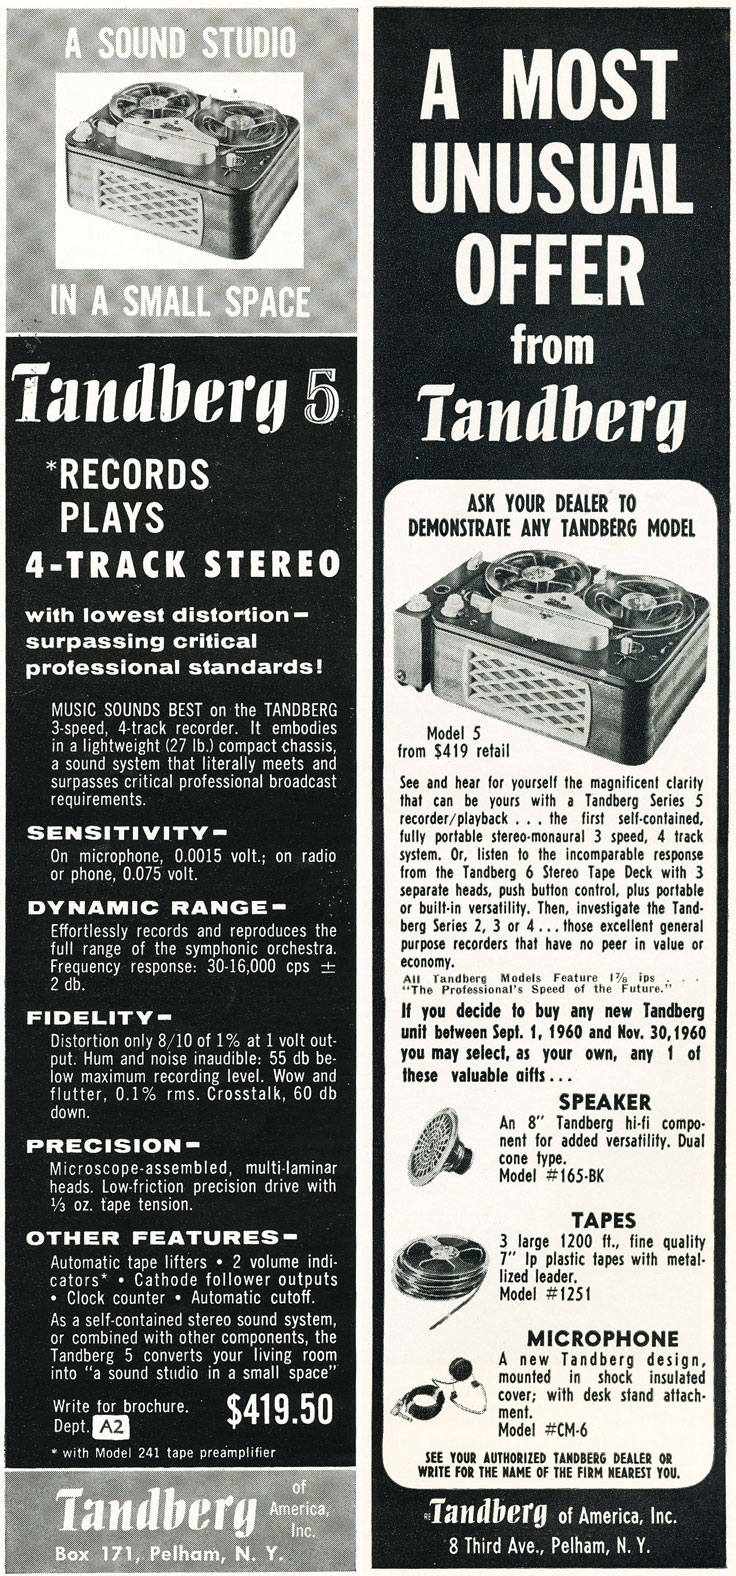 1960 ads for the Tandberg Model 5 reel to reel tape recorder in   Reel2ReelTexas.com's vintage recording collection